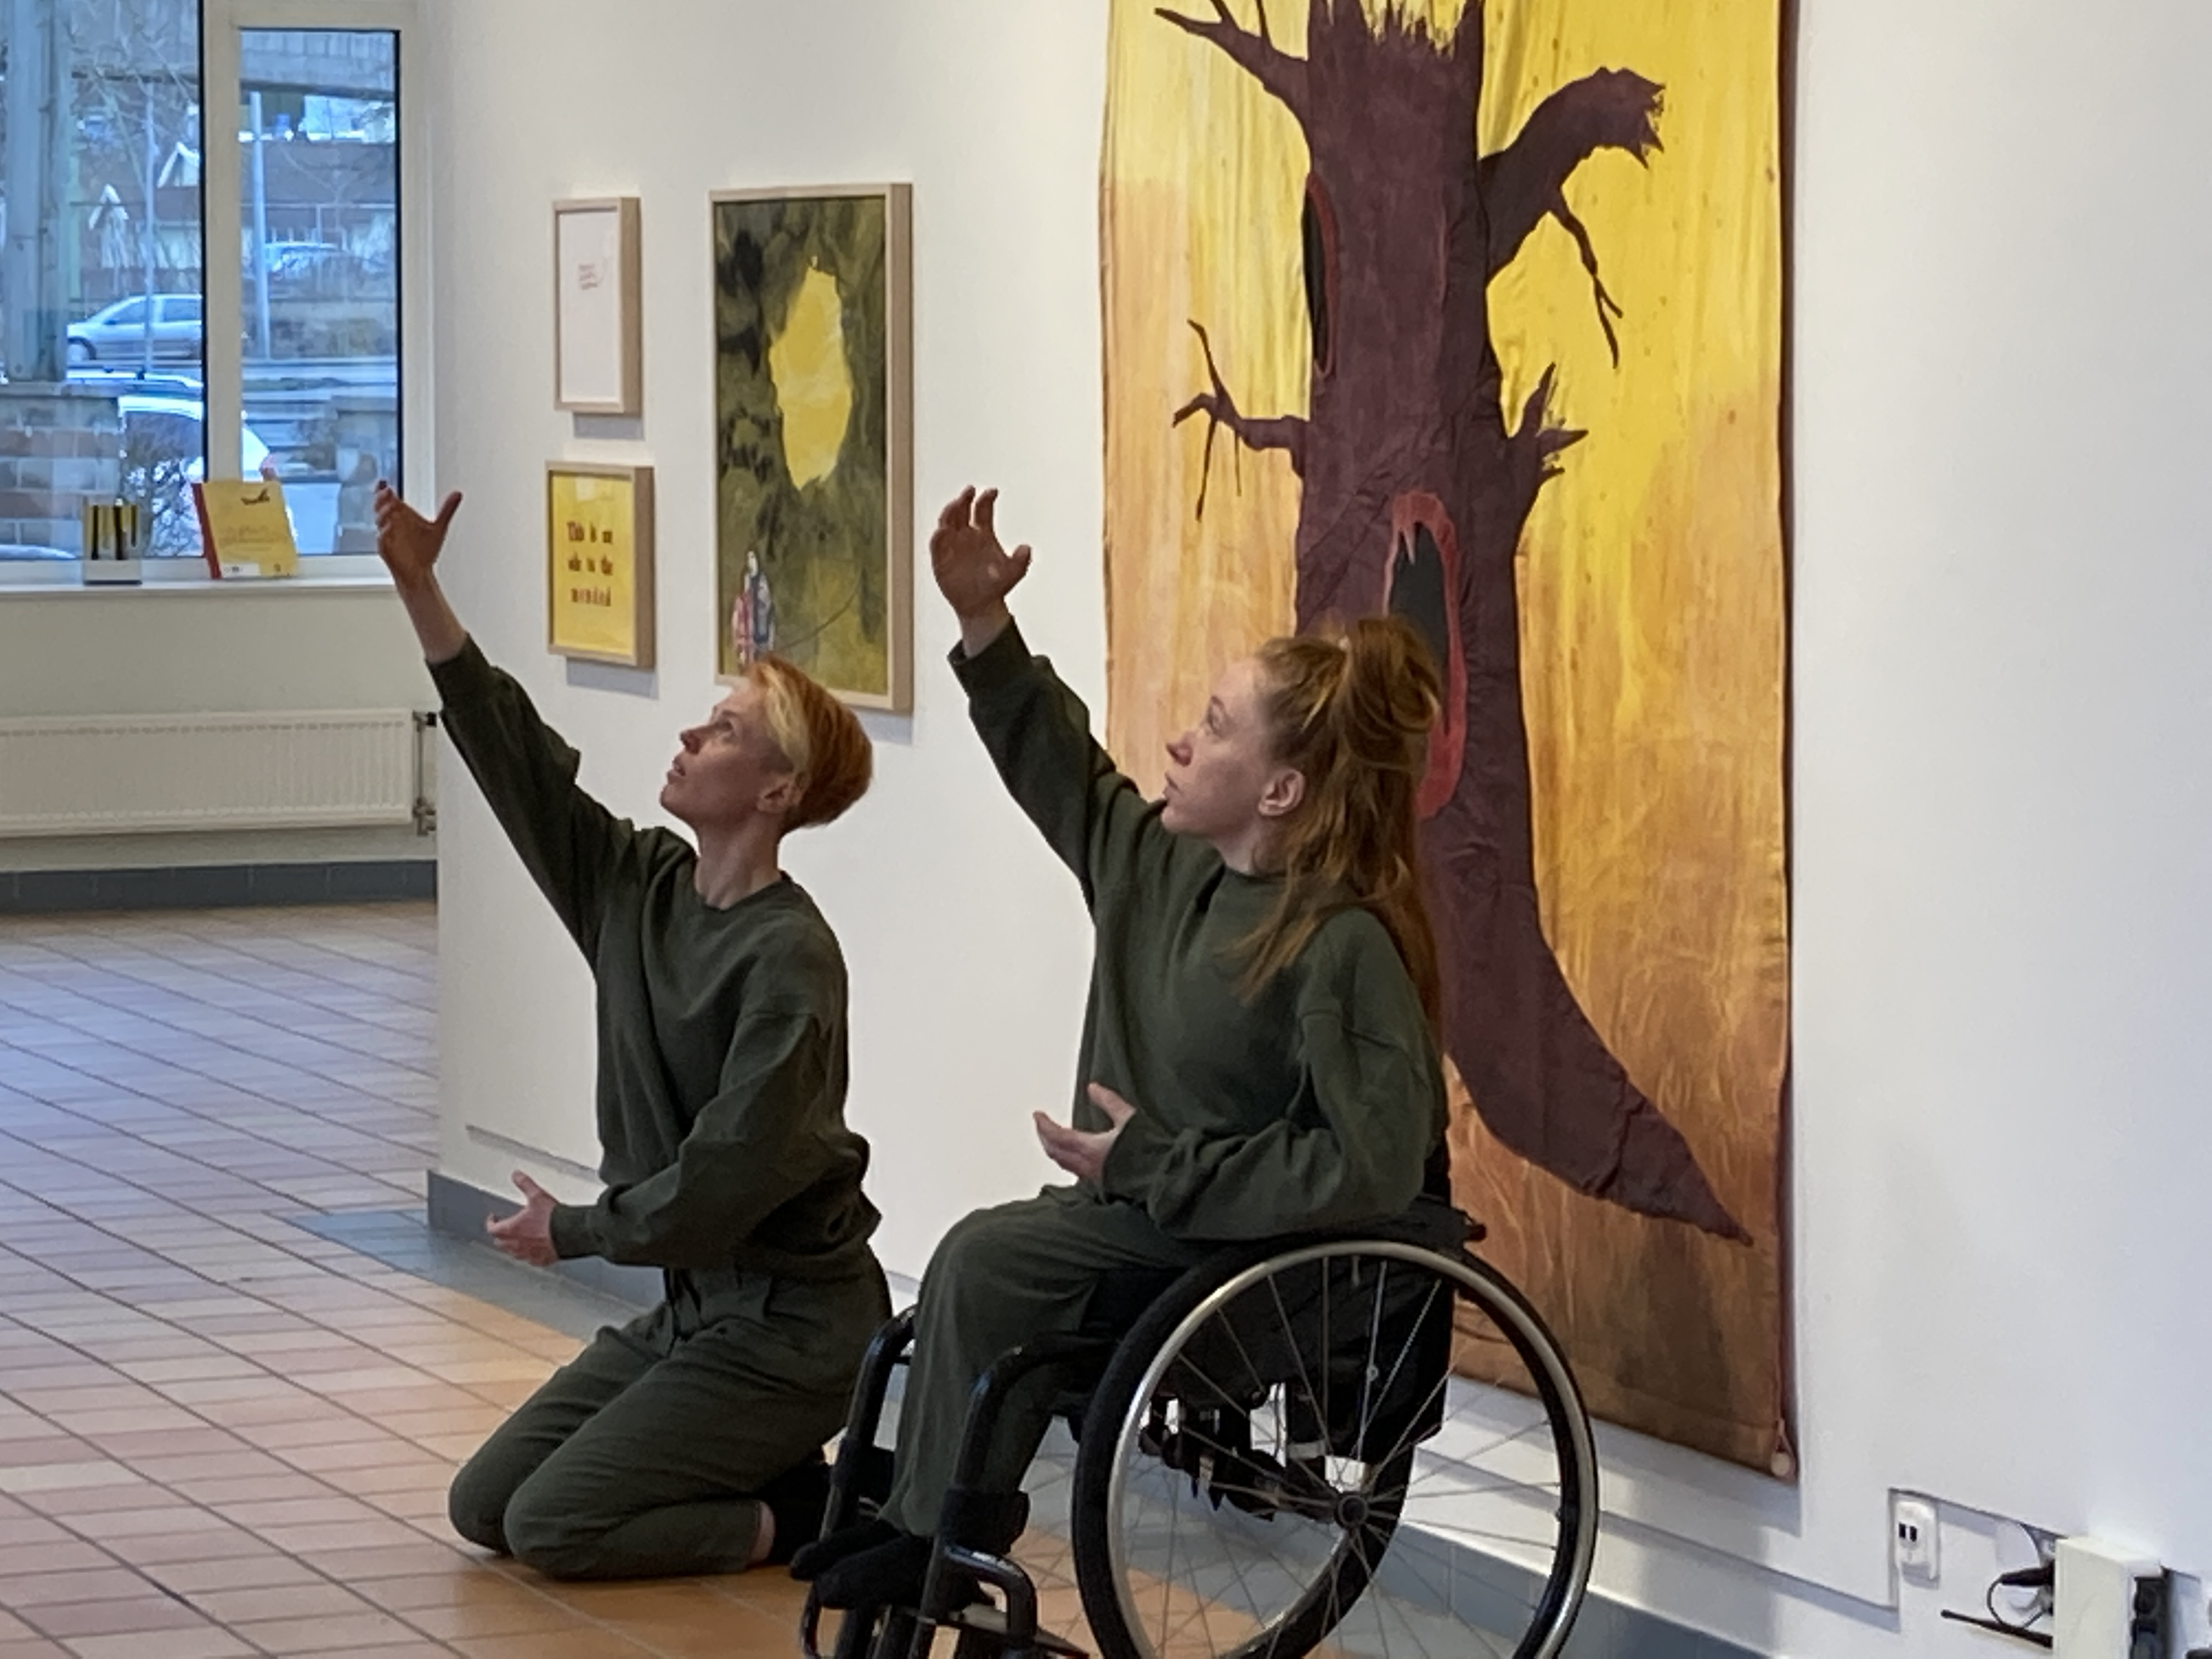 The image depicts dancers Hannah Karlsson and Felicia Sparrström wearing dark green clothes, sitting in front of a painting depicting a tree. The dancers are looking towards the top left corner of the picture, while stretching out their right arms in the same direction. Photo: Veera Suvalo Grimberg